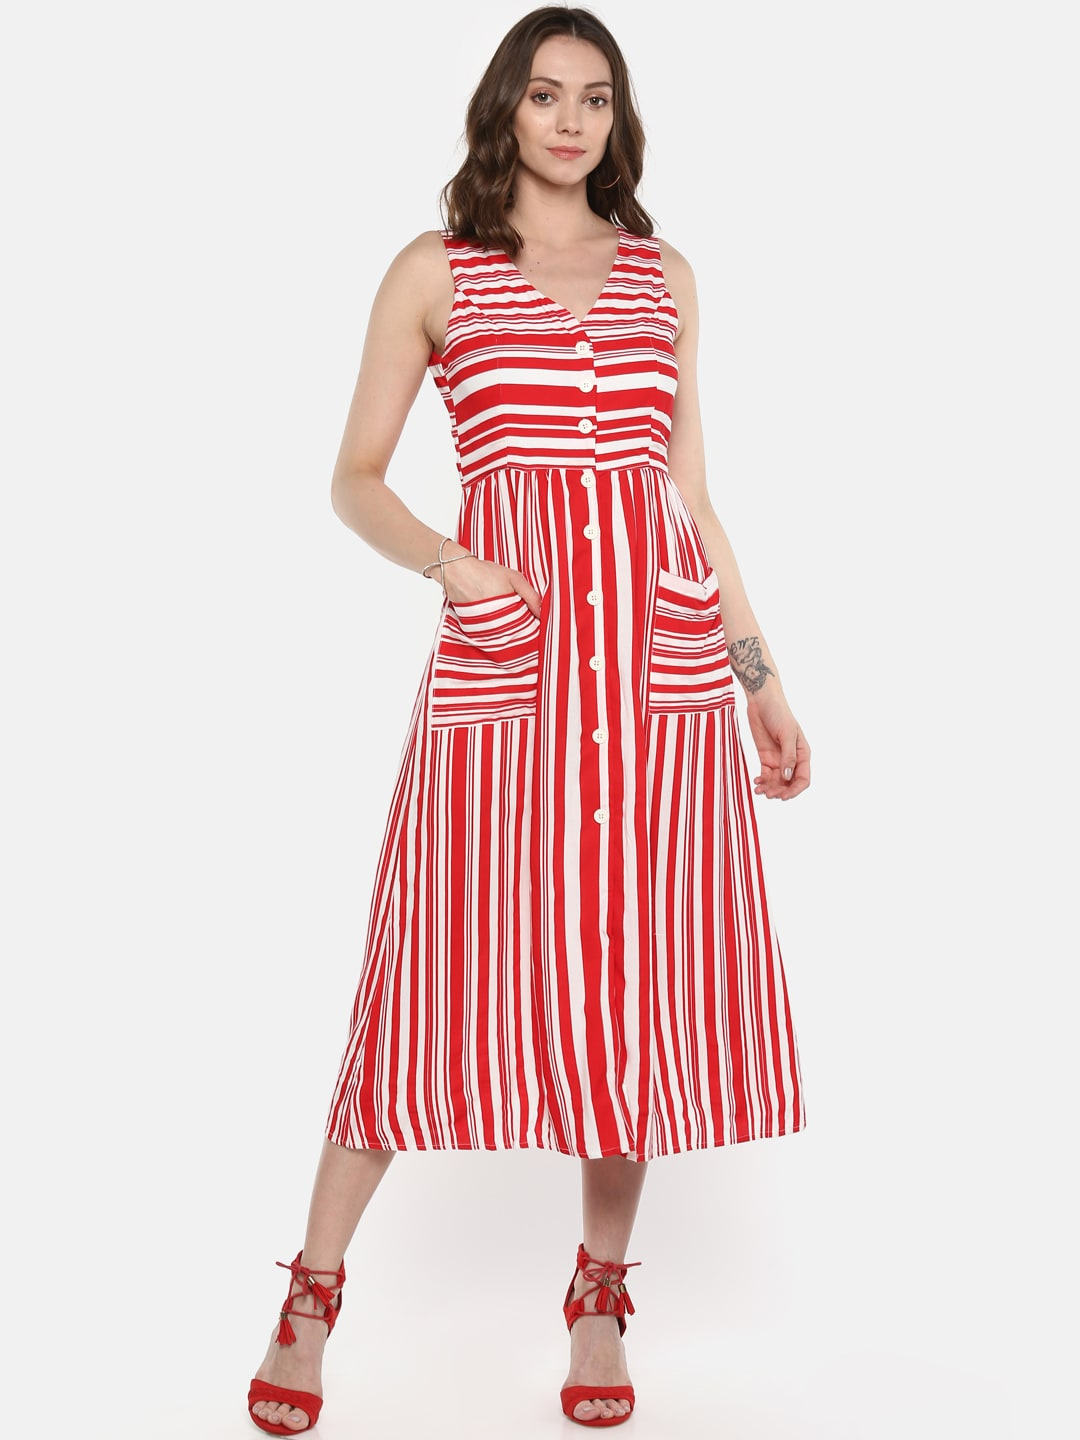 1adddfa446c Red Dress - Buy Trendy Red Colour Dresses Online in India